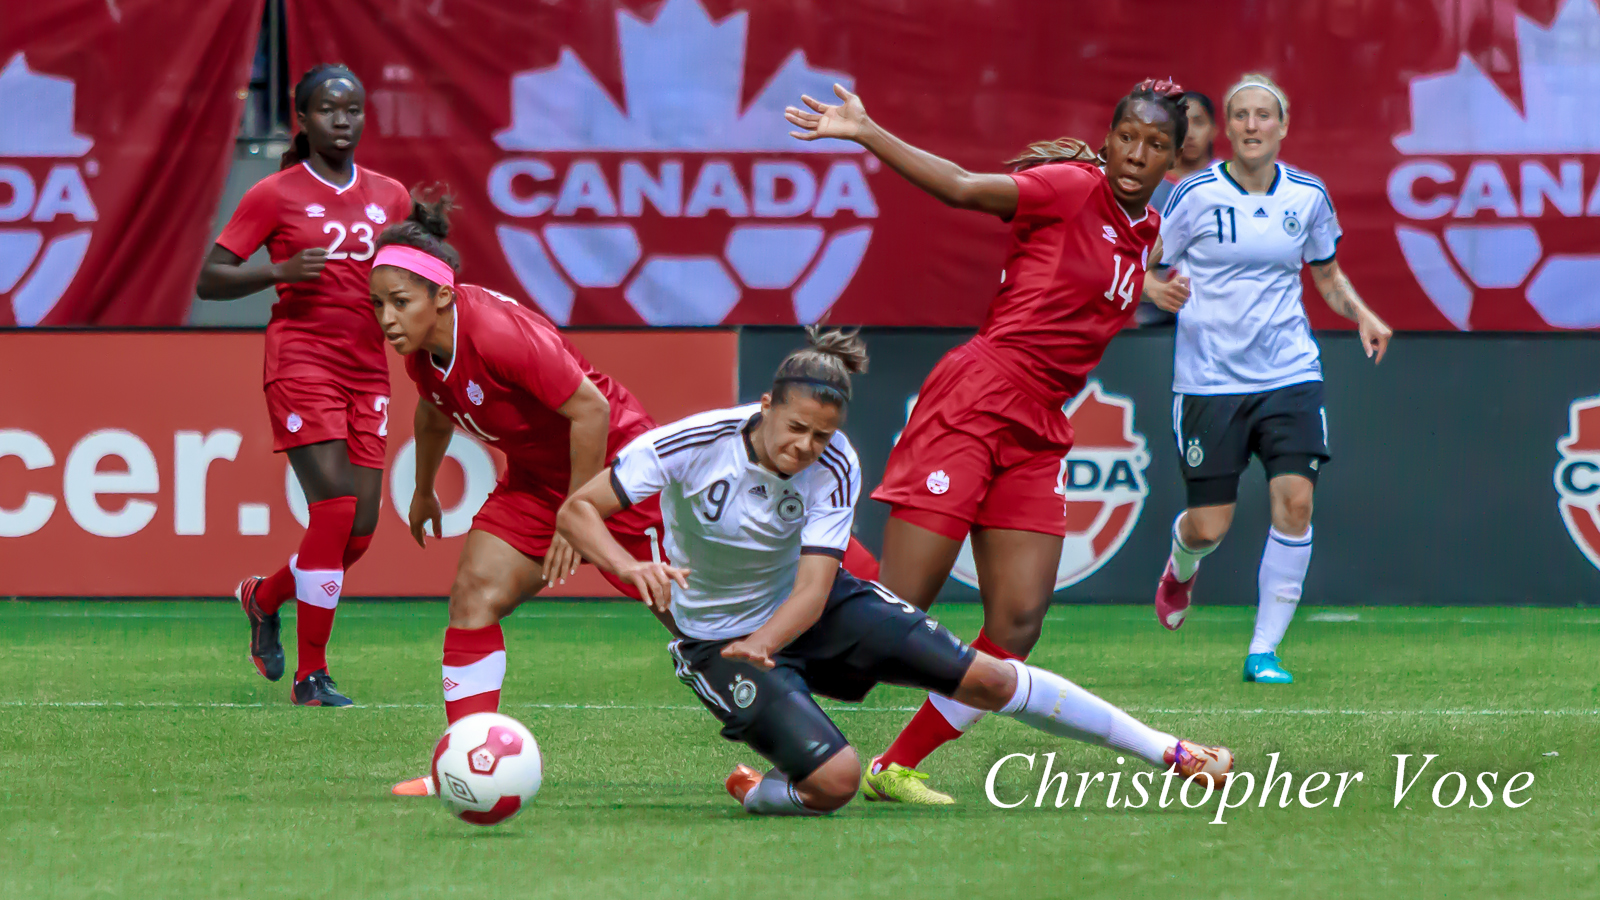 2014-06-18 Desiree Scott, Lena Lotzen, and Kadeisha Buchanan.jpg